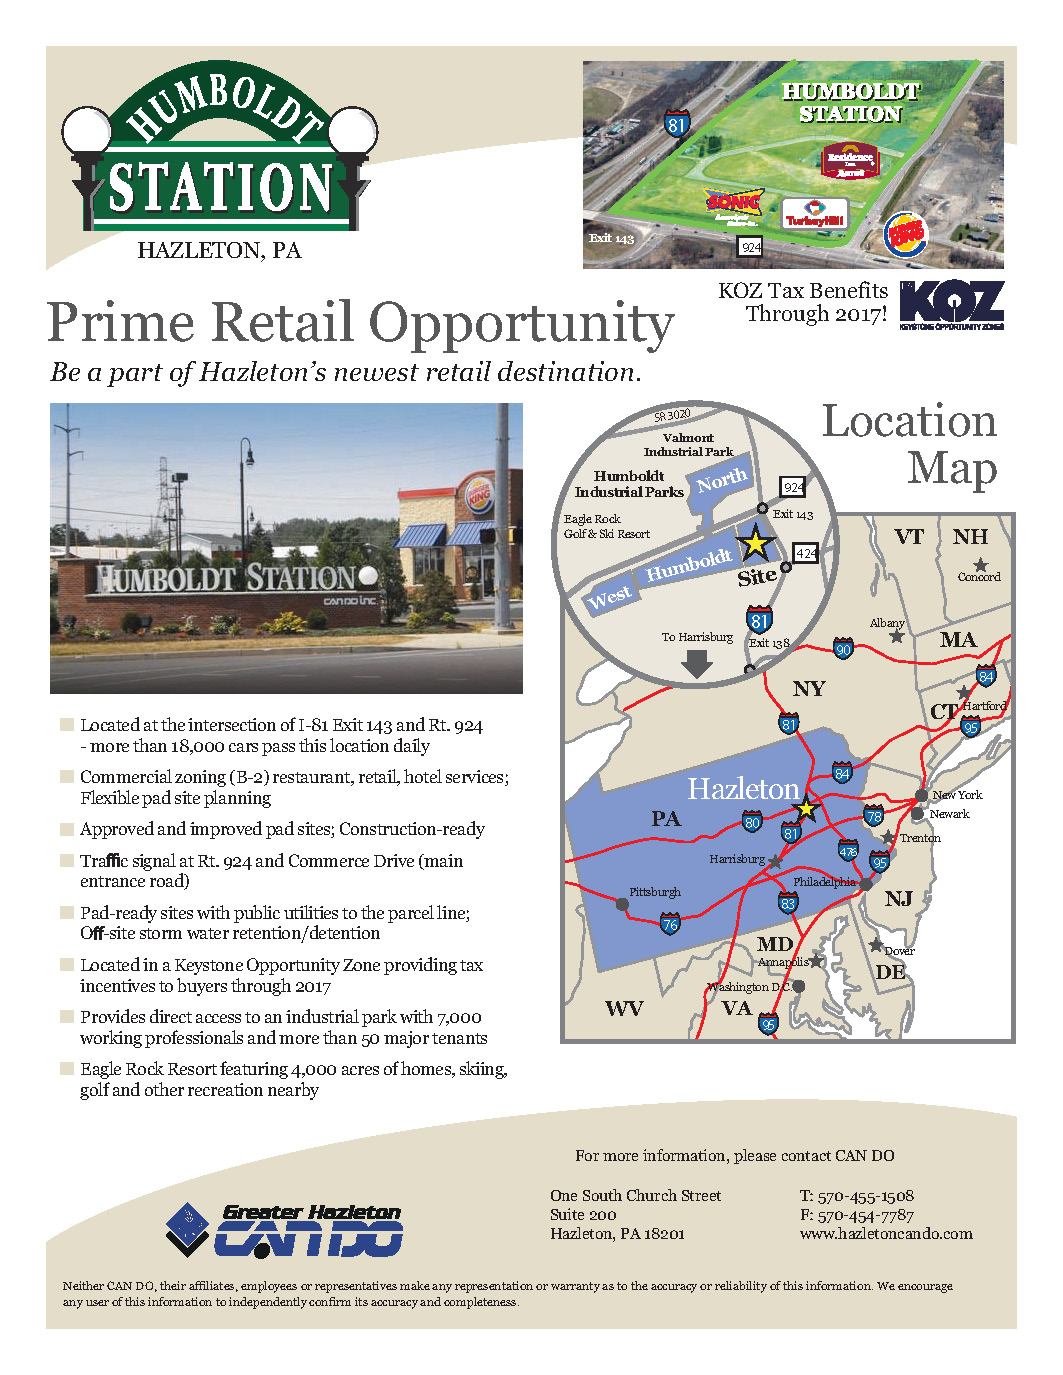 Humboldt Station flyer-CAN DO Page 1